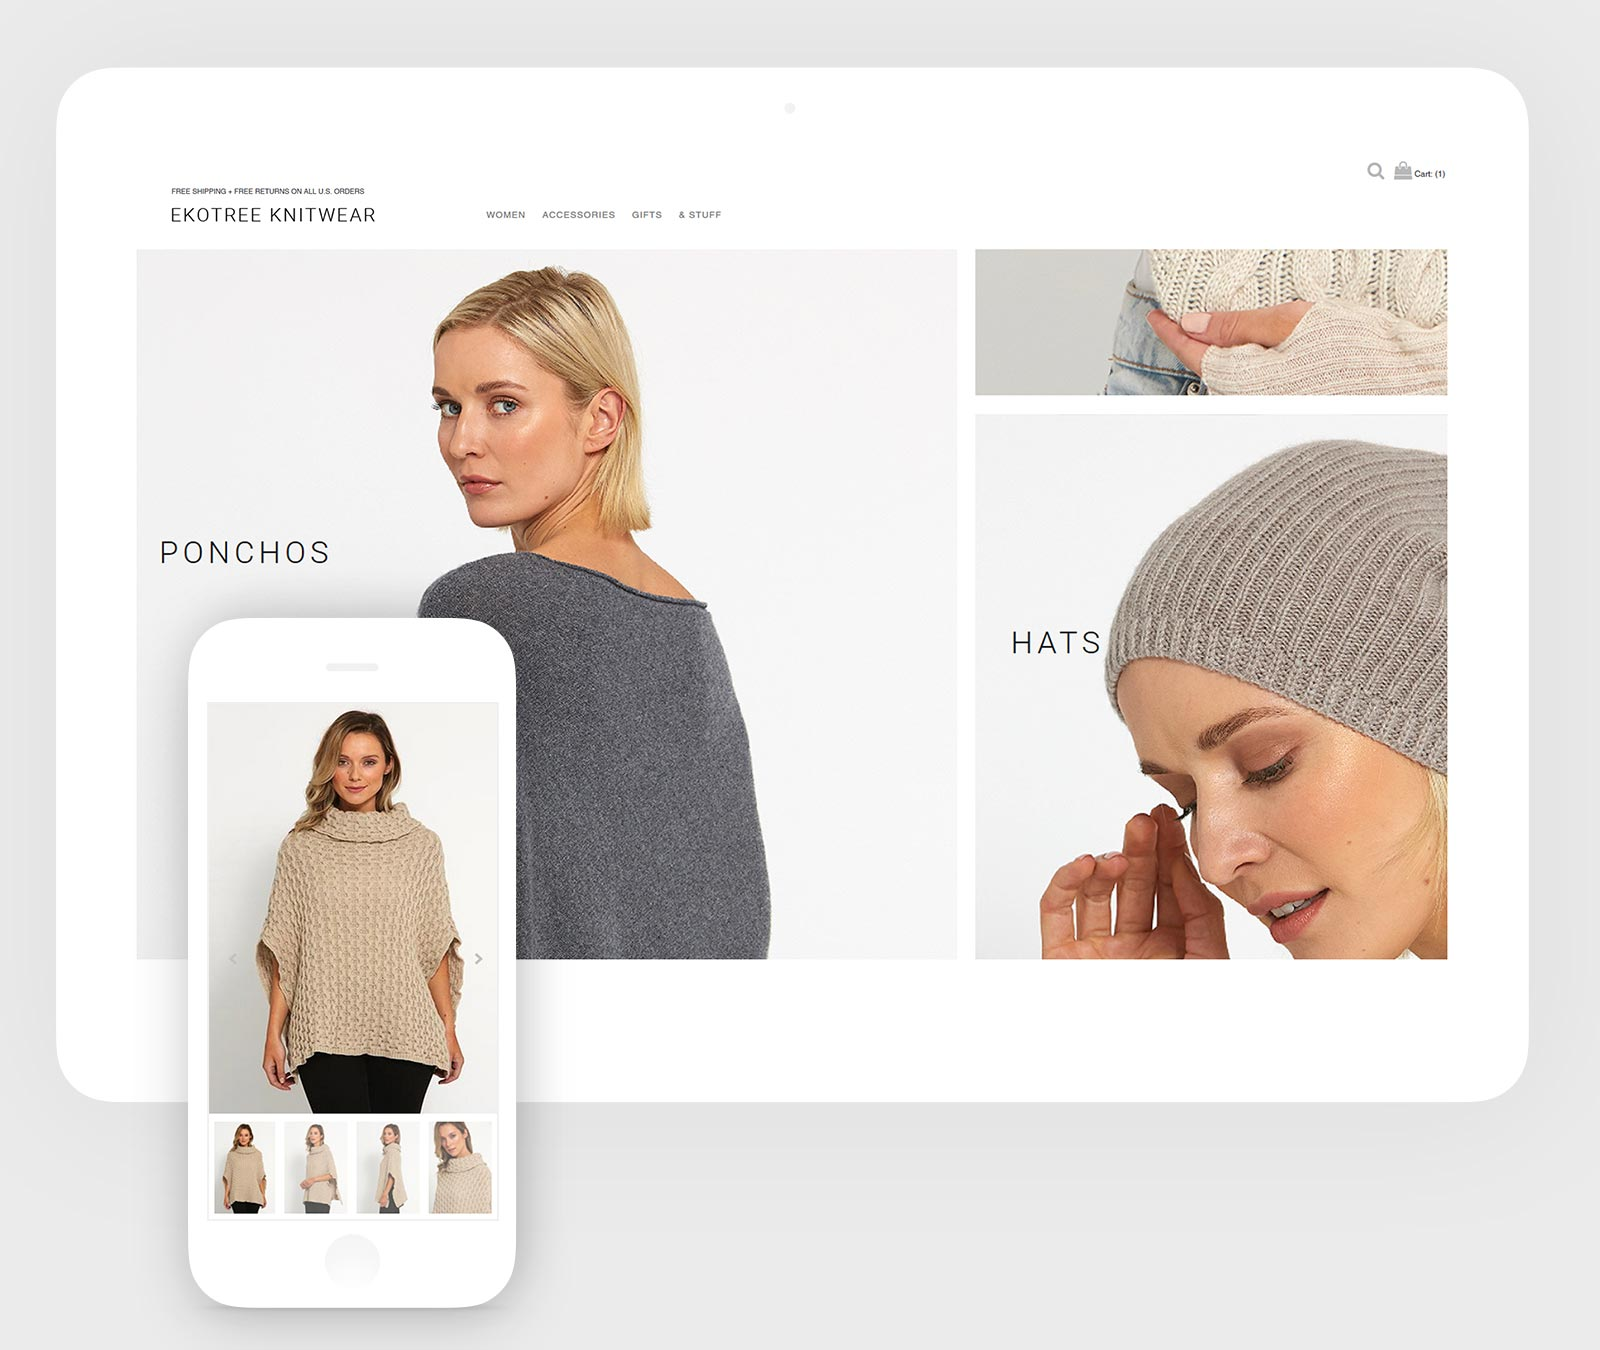 Layout design on mobile and tablet showing products page